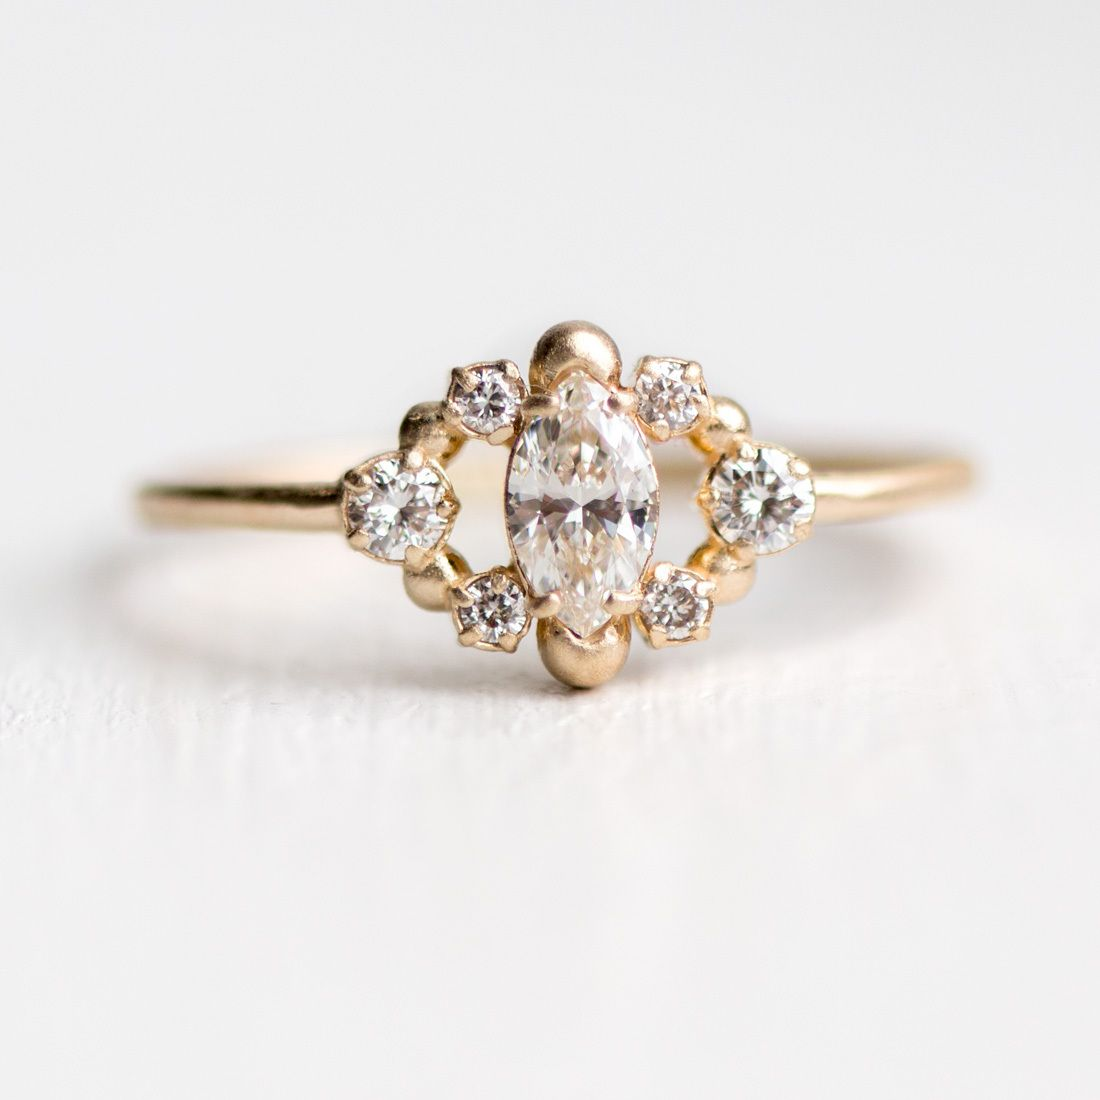 best images about jewelry on pinterest rose gold rings opals